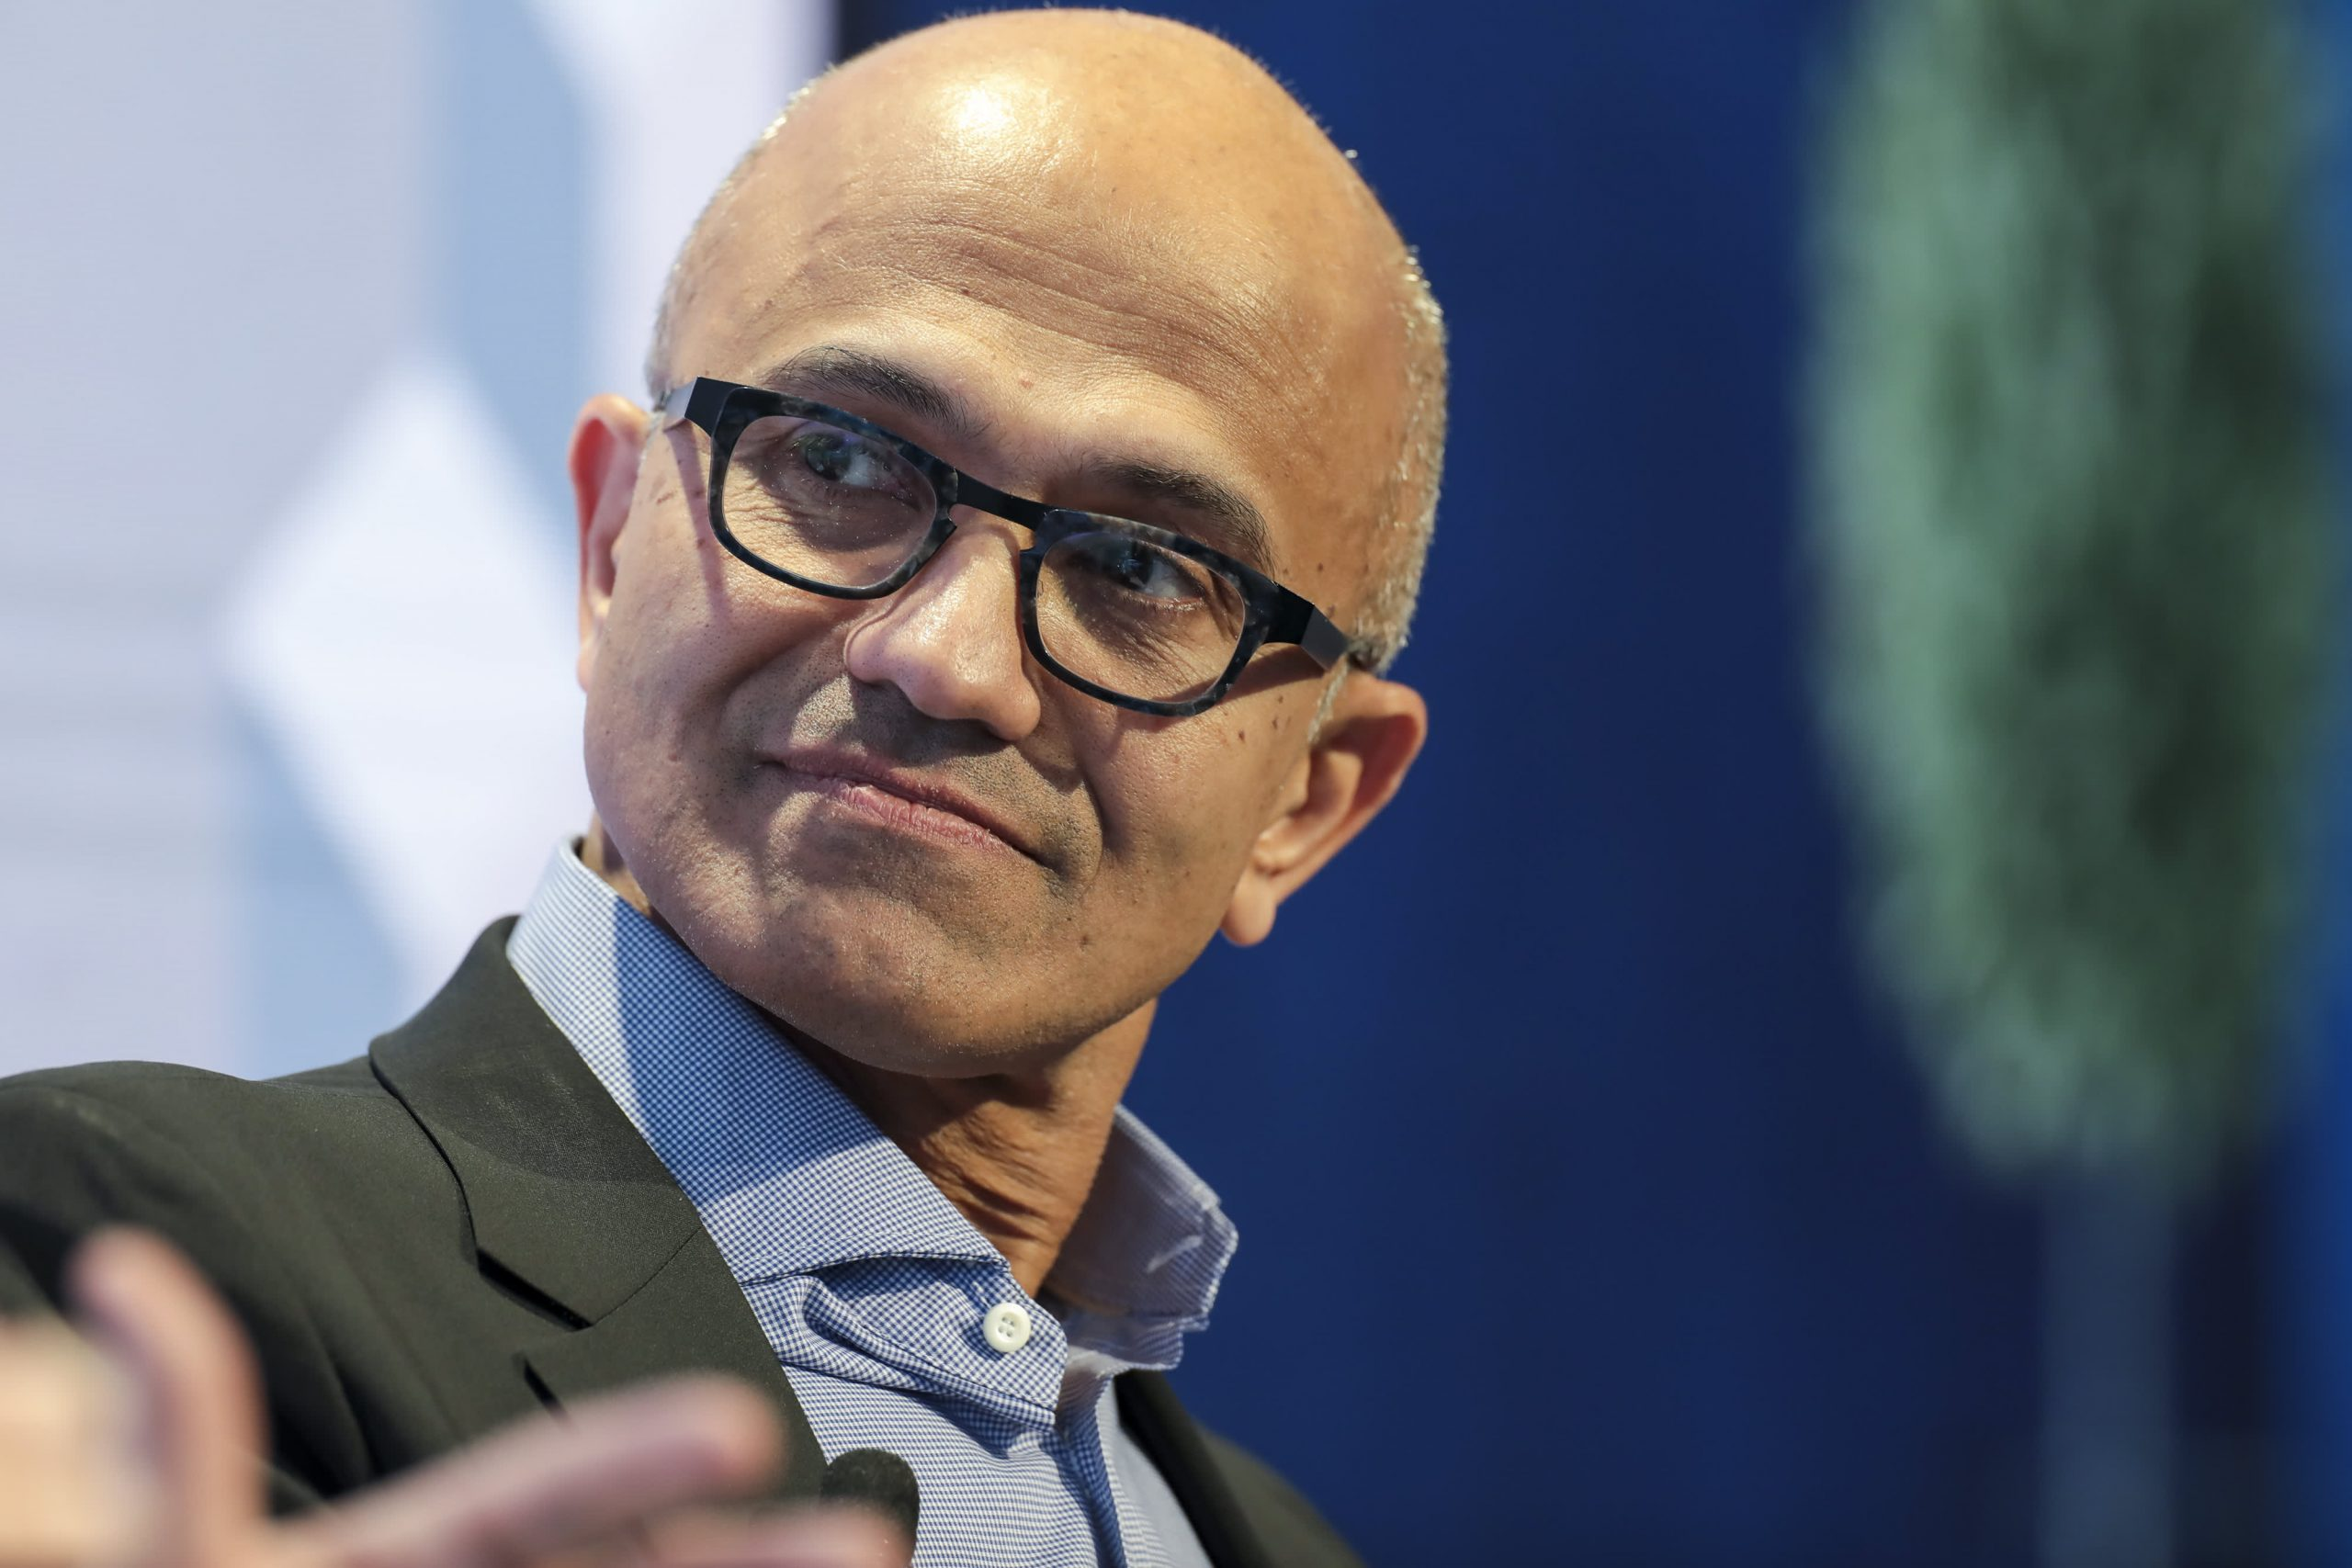 Microsoft buys Nuance Communications in a $16 billion deal